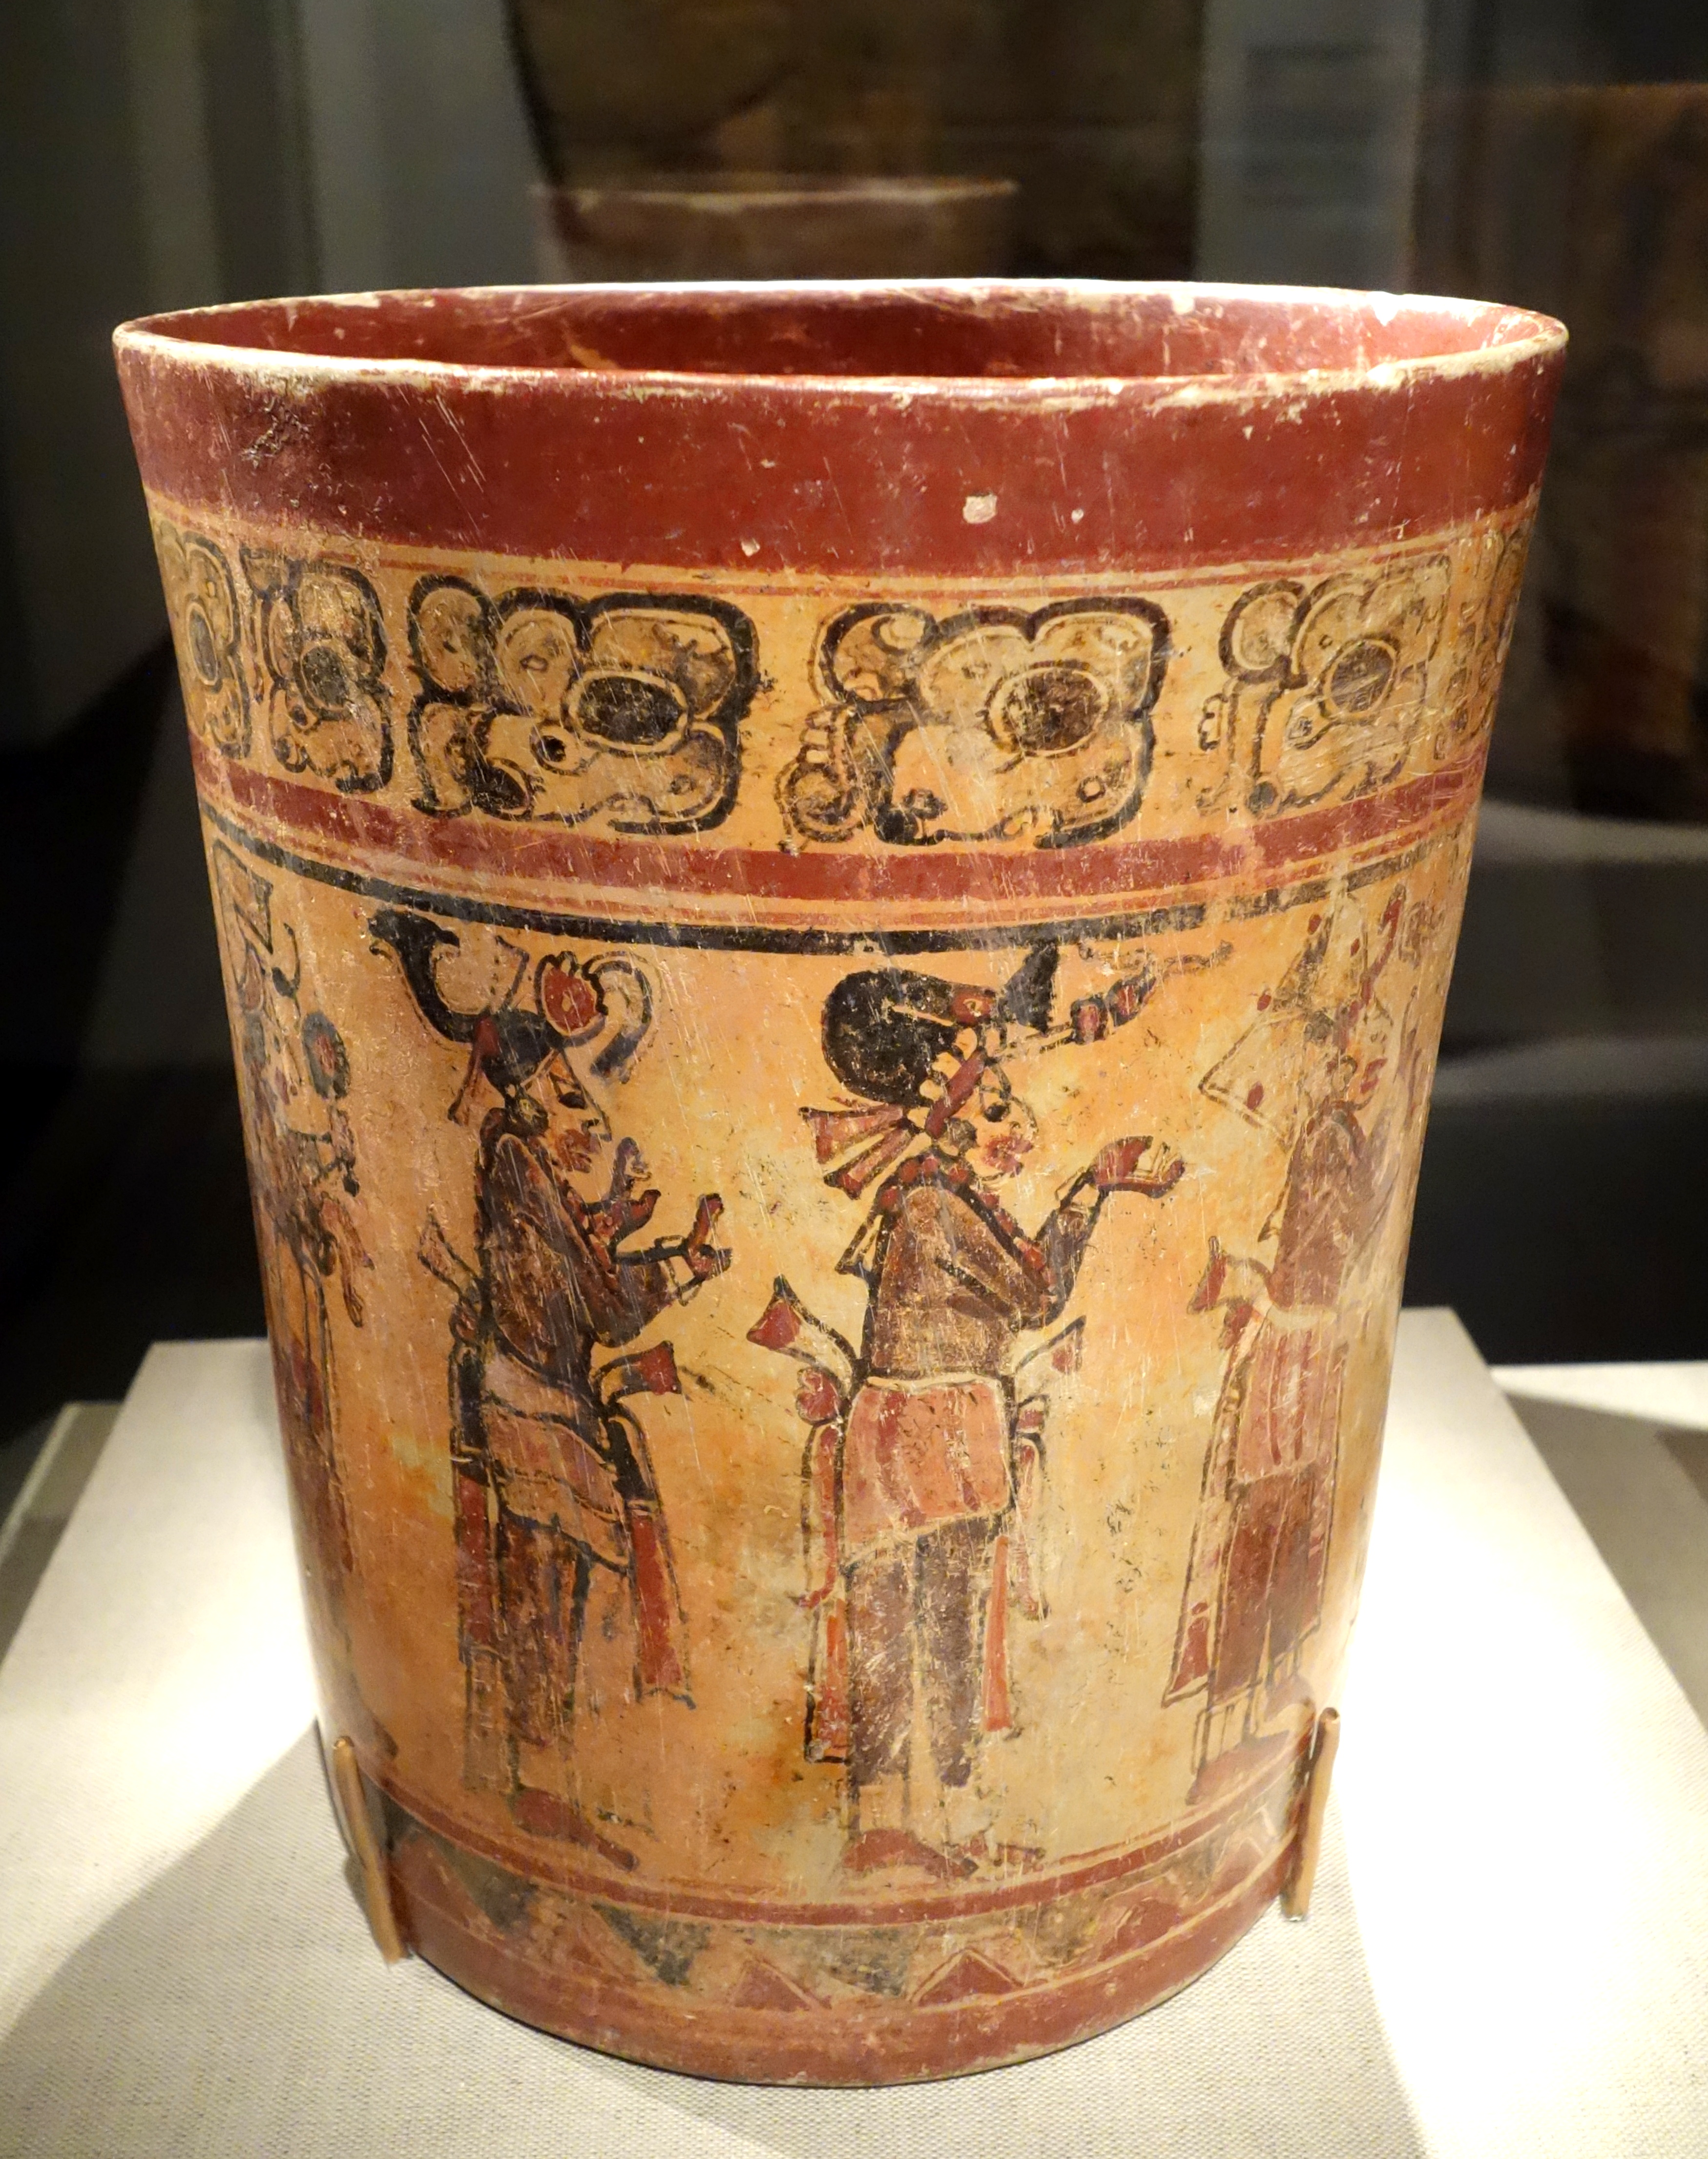 File Vessel With Procession Of Figures Honduras Maya 7th 10th Century Ad Earthenware Polychrome Slip De Young Museum Dsc00696 Jpg